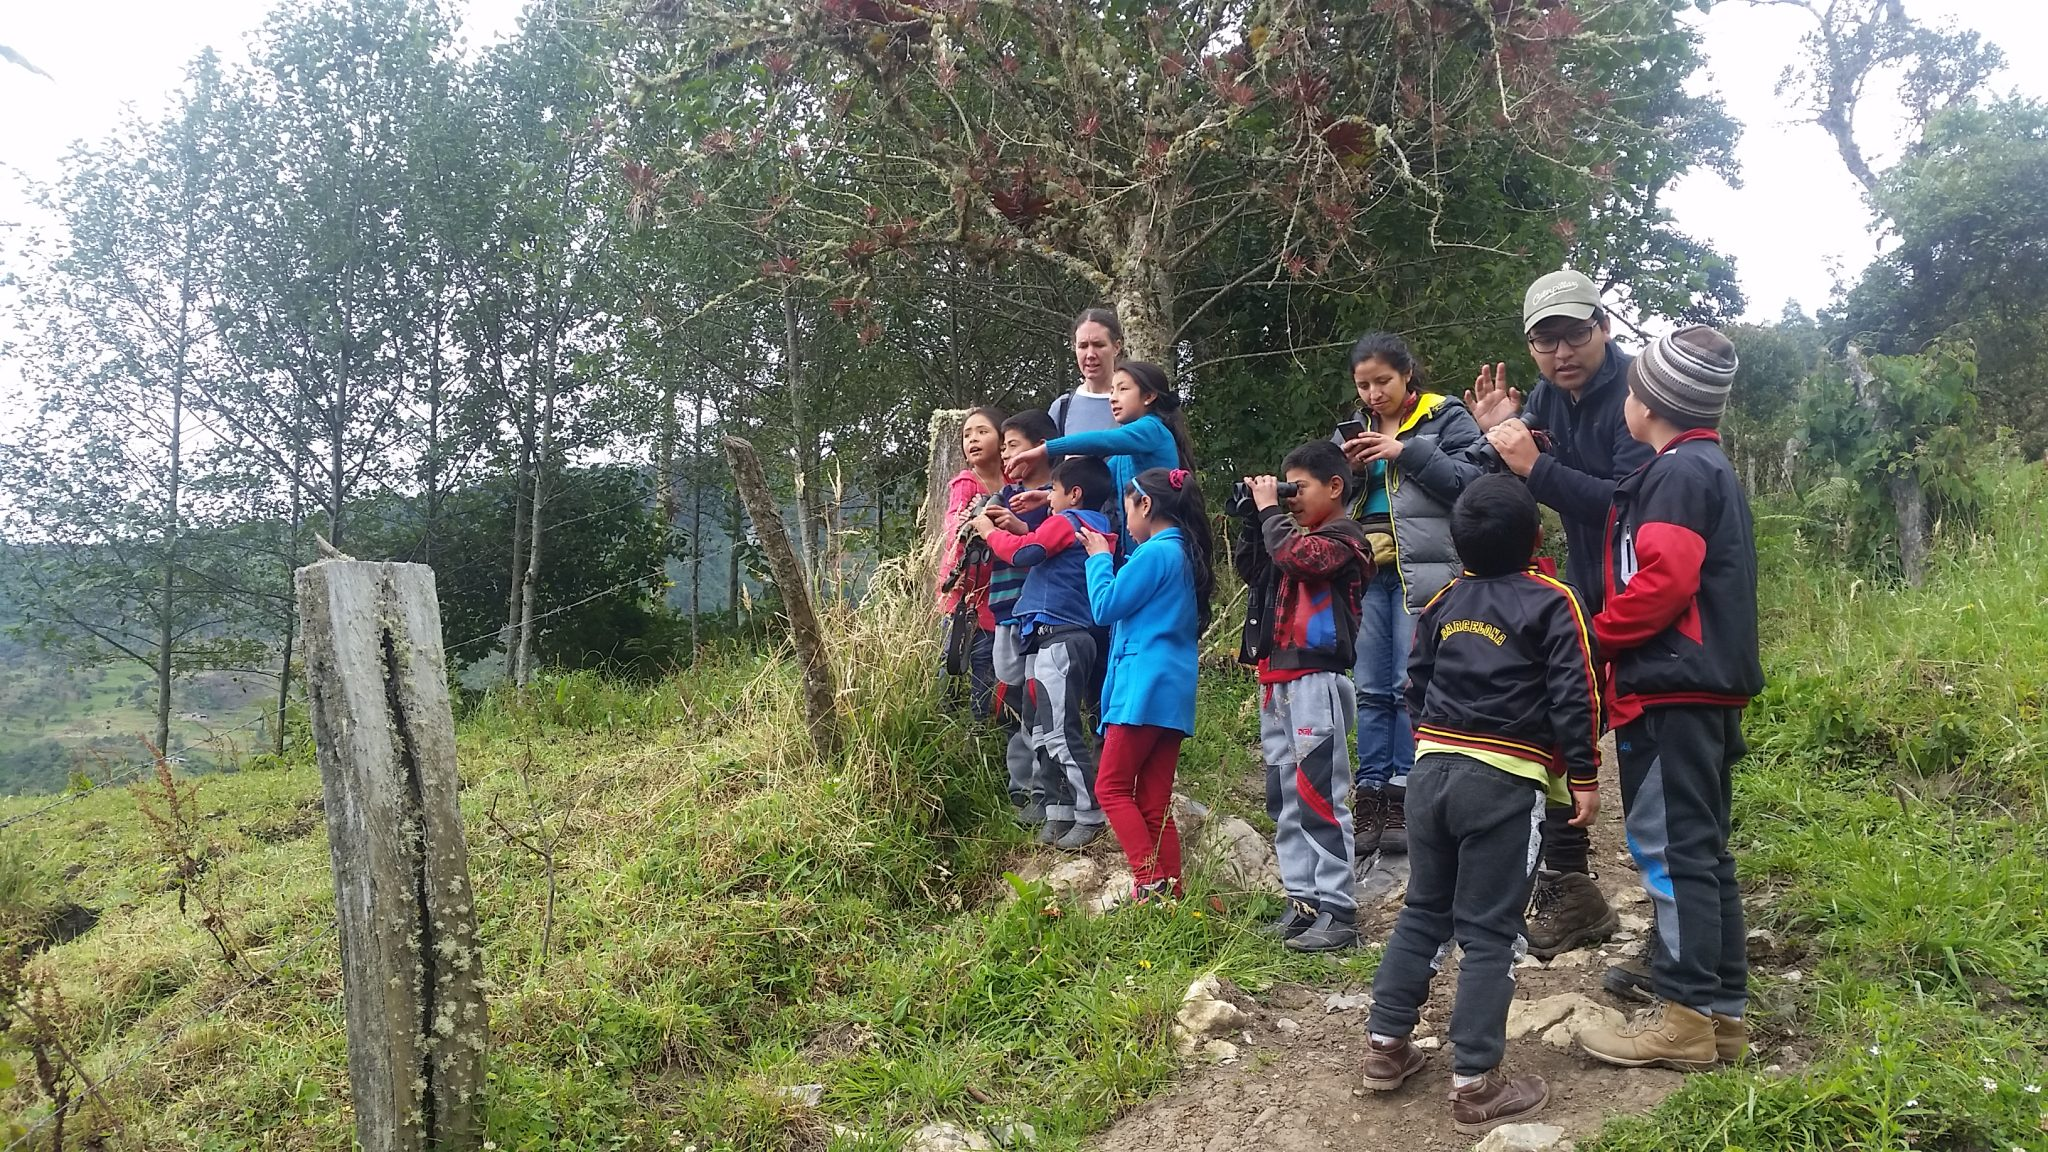 children learning how to use binoculars